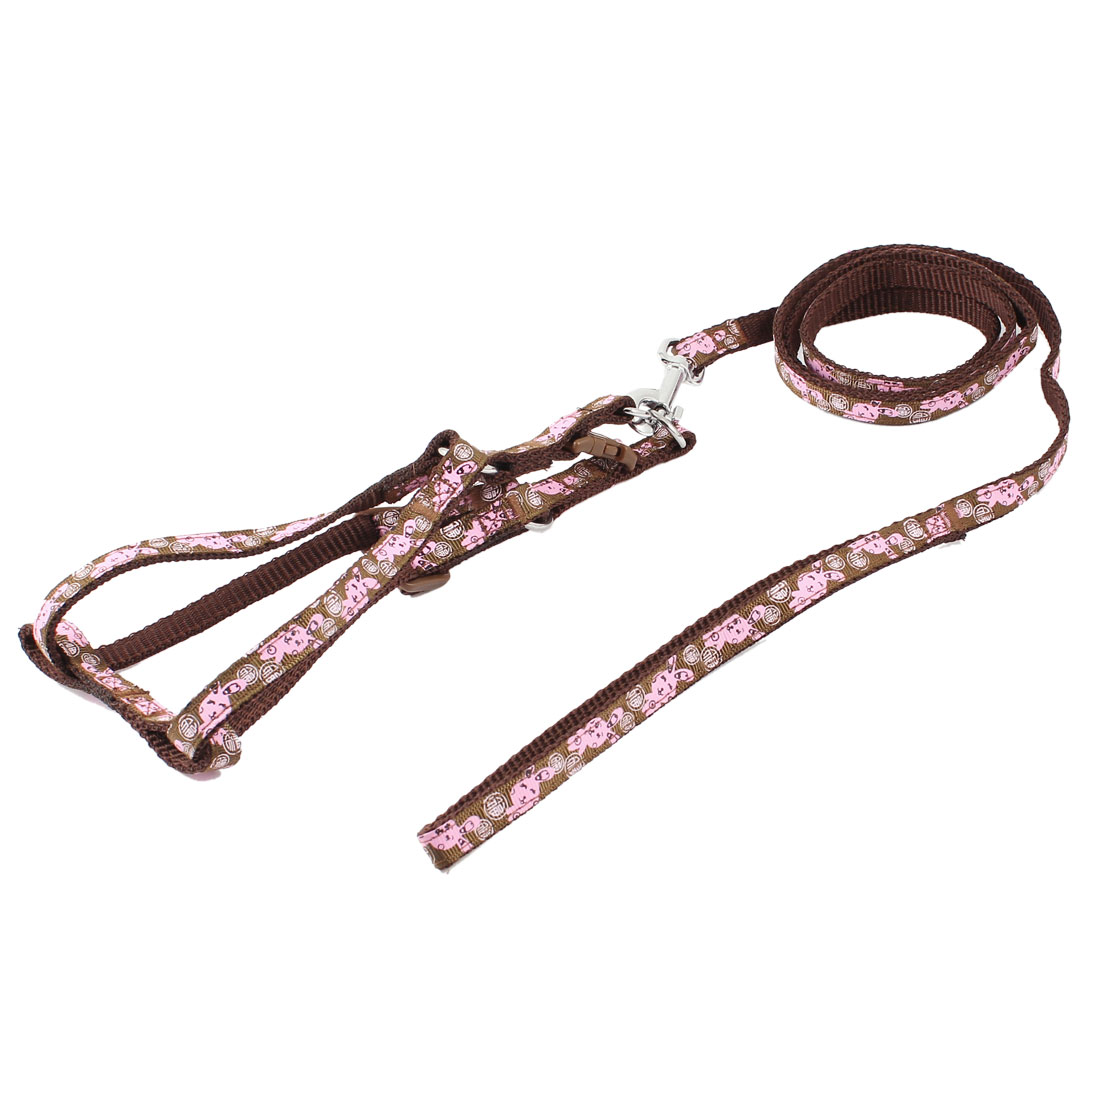 Trigger Hook Pink Rabbit Pattern Nylon Rope Lead Pet Dog Yorkie Harness Halter Leash Chocolate Color